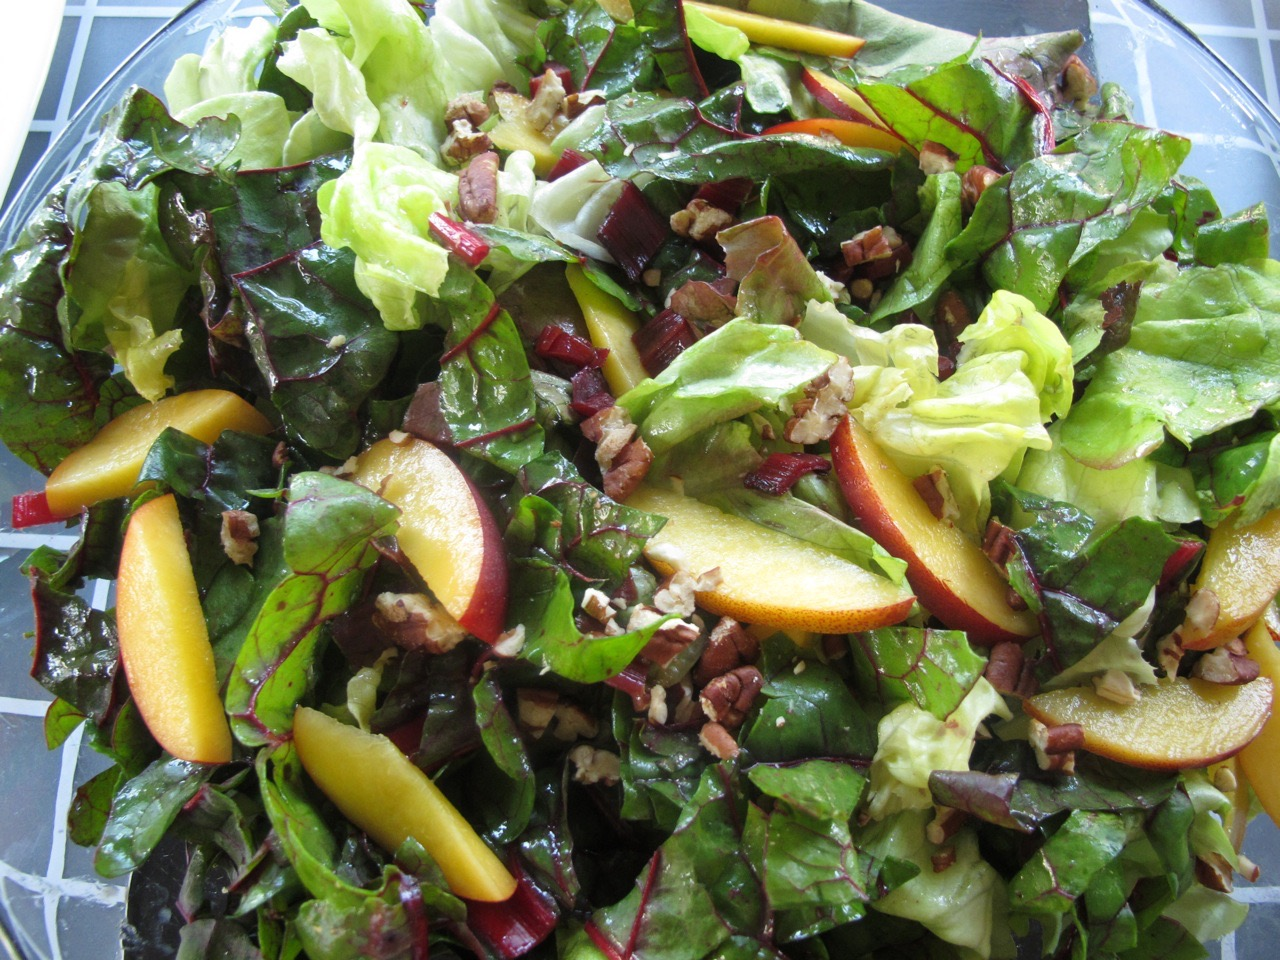 Swiss Chard Salad from Spinach TIger